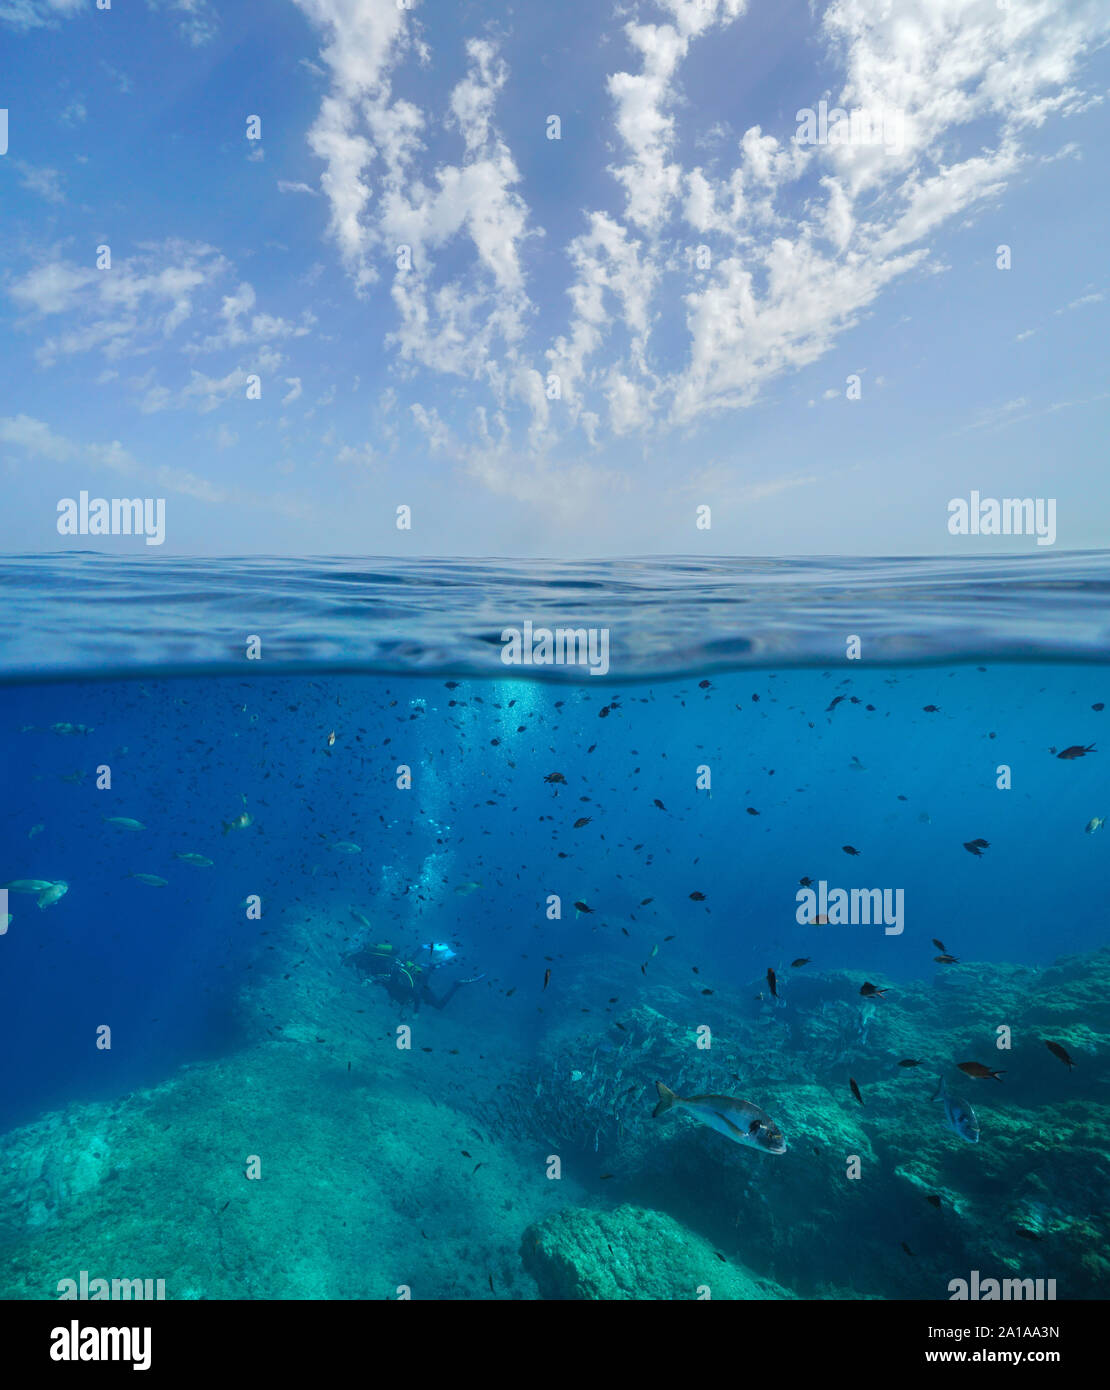 Seascape of Mediterranean sea, many fish with scuba divers underwater and blue sky with cloud, split view over and under water surface, France Stock Photo